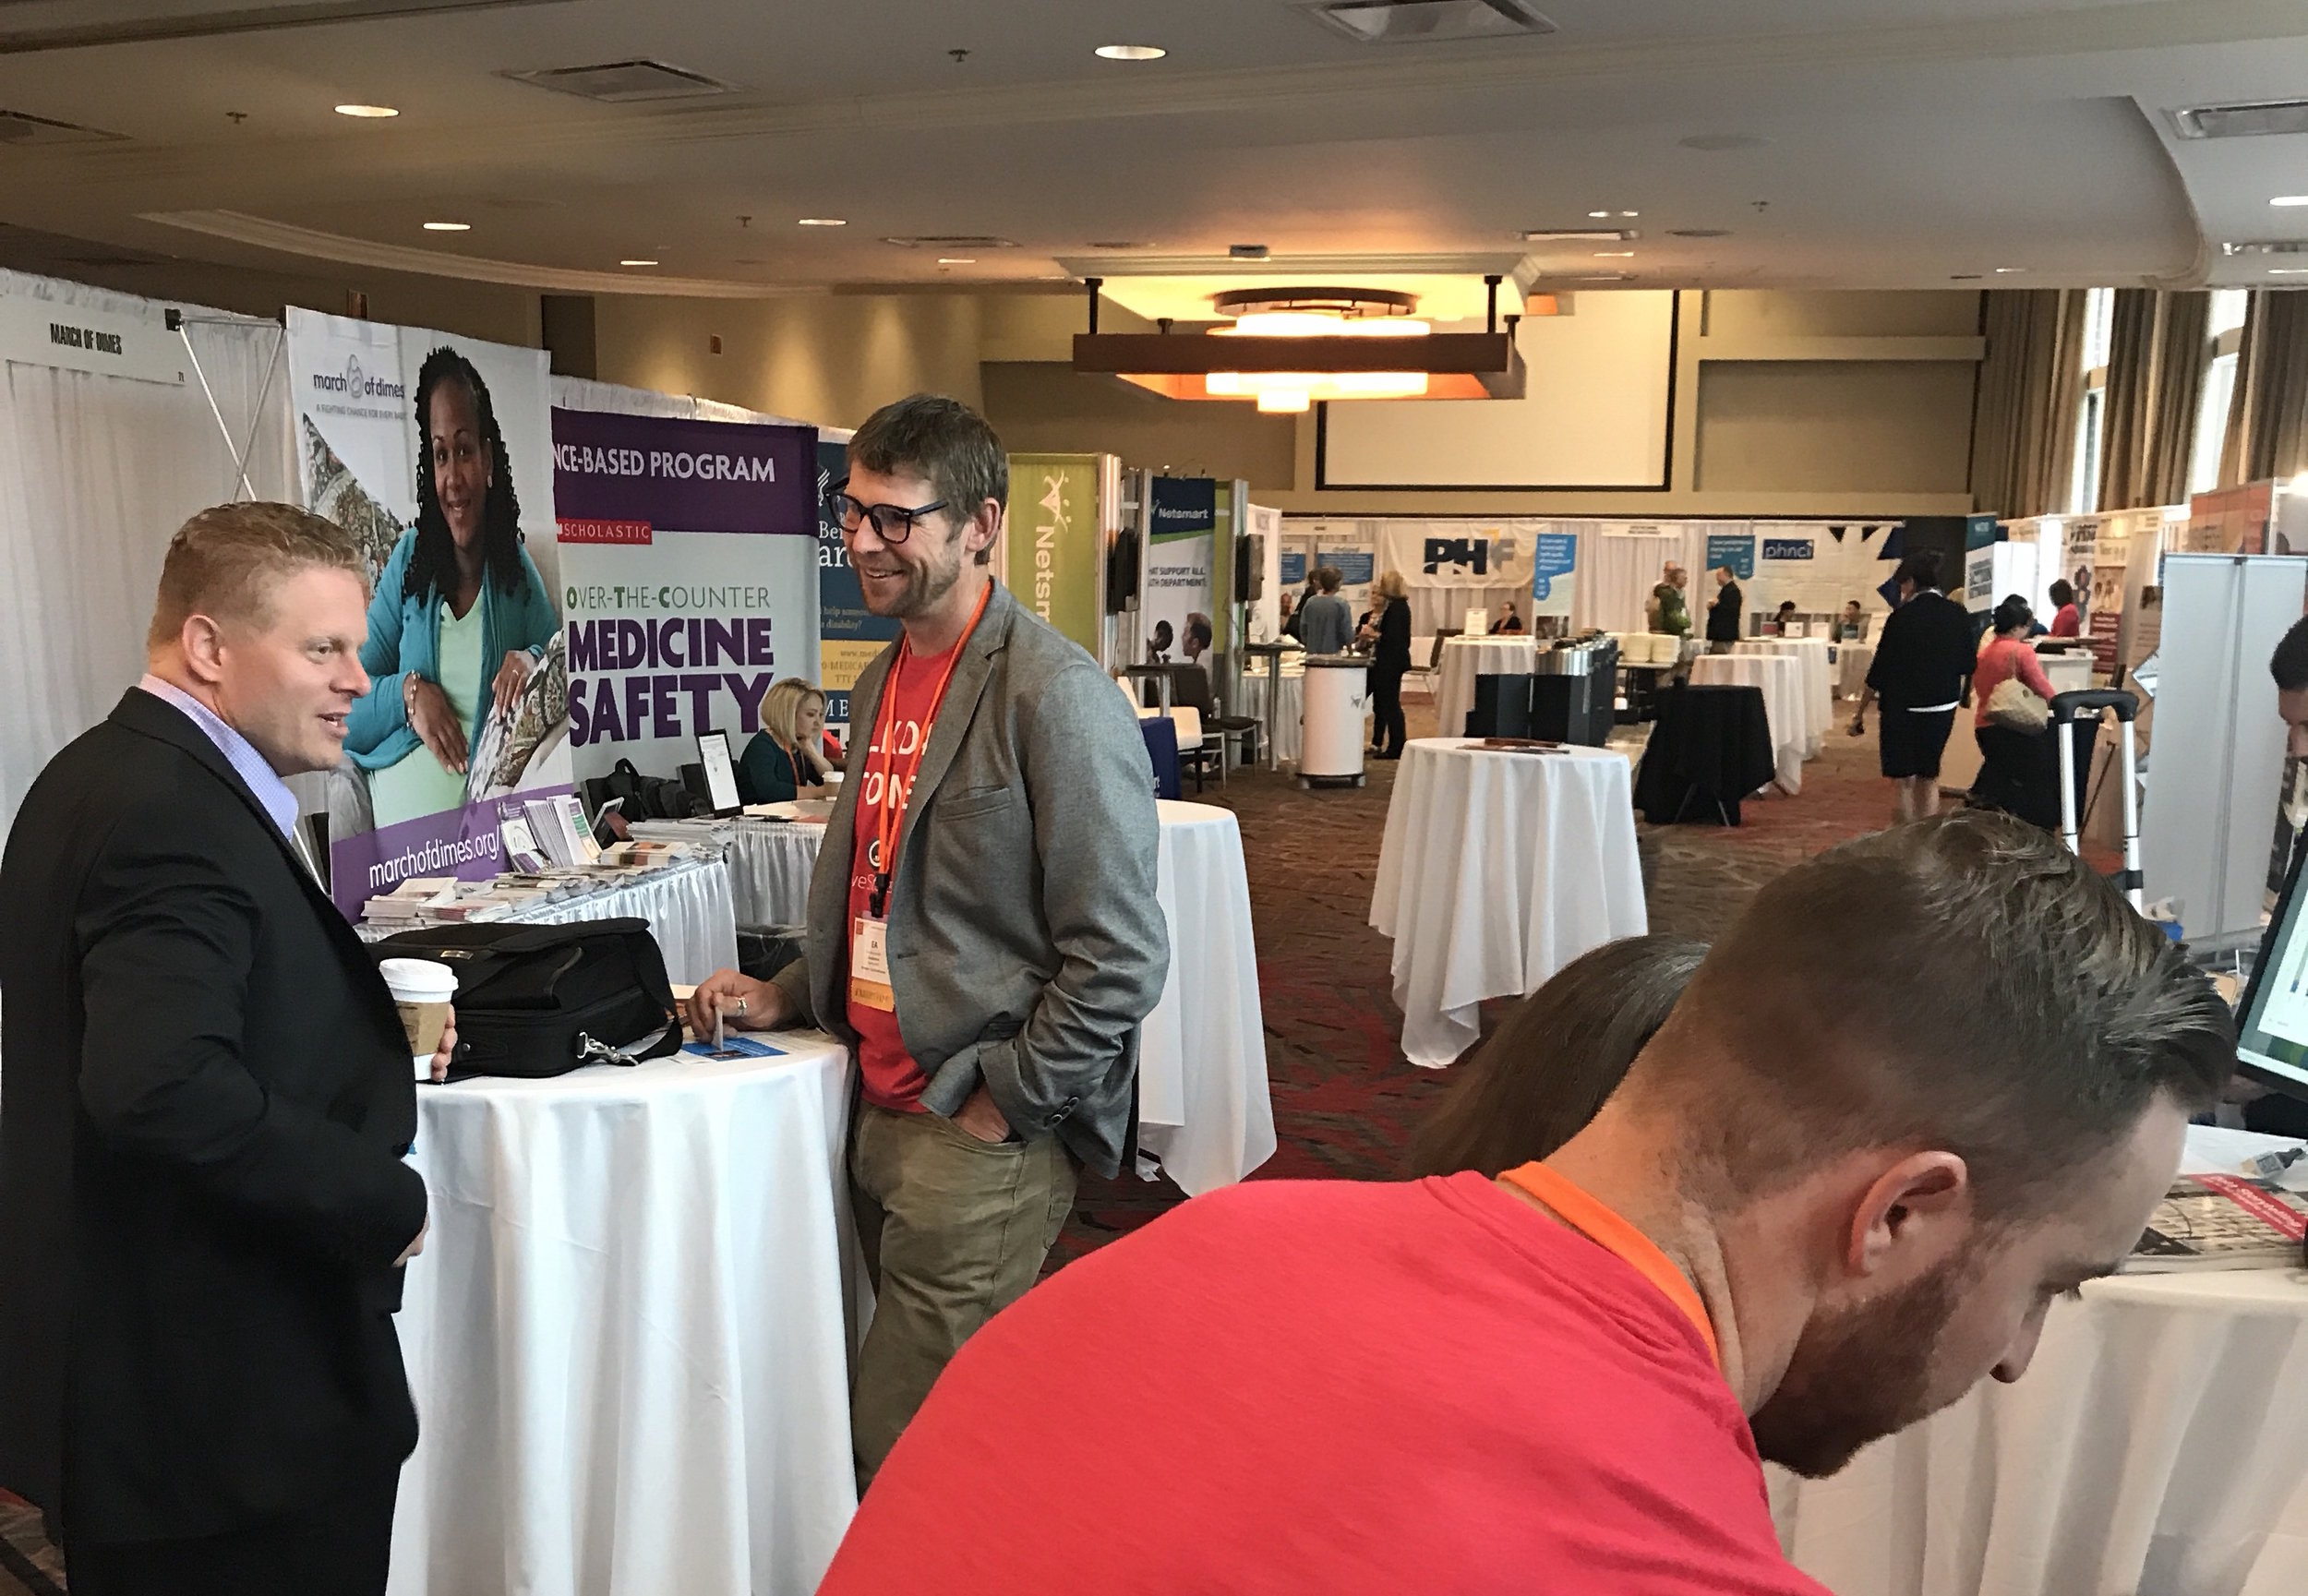 Cory Kendrick (left), Director of Population Health with Summit County, OH, speaks with LiveStories' Director of Partner Engagement, EA Weymuller at the 2017 NACCHO conference. In the foreground, ADR Ryan Gibson shows the LiveStories platform in action.